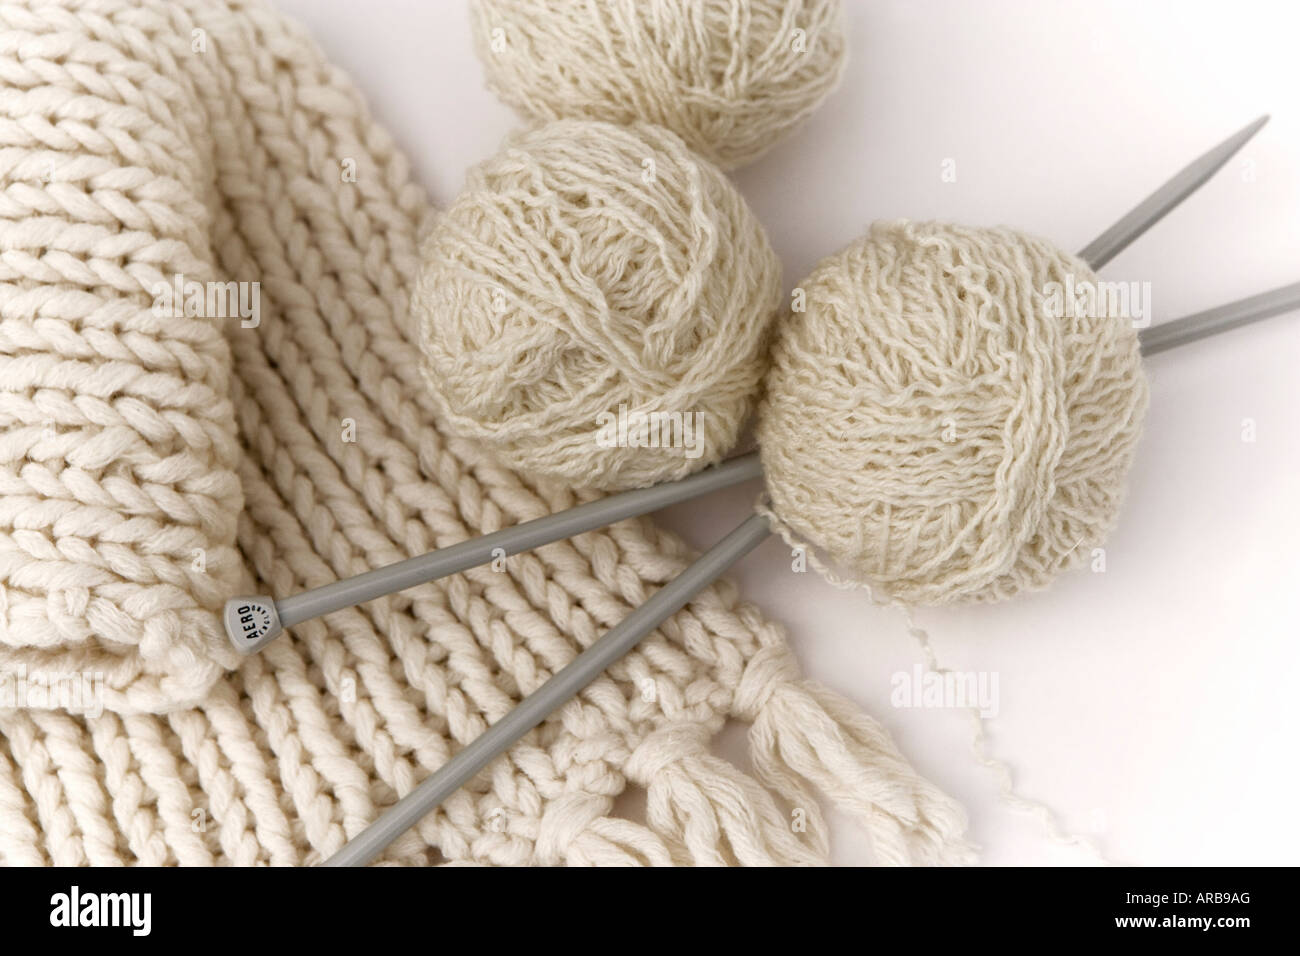 Knitting needles, wool and a plain knit cream scarf - Stock Image